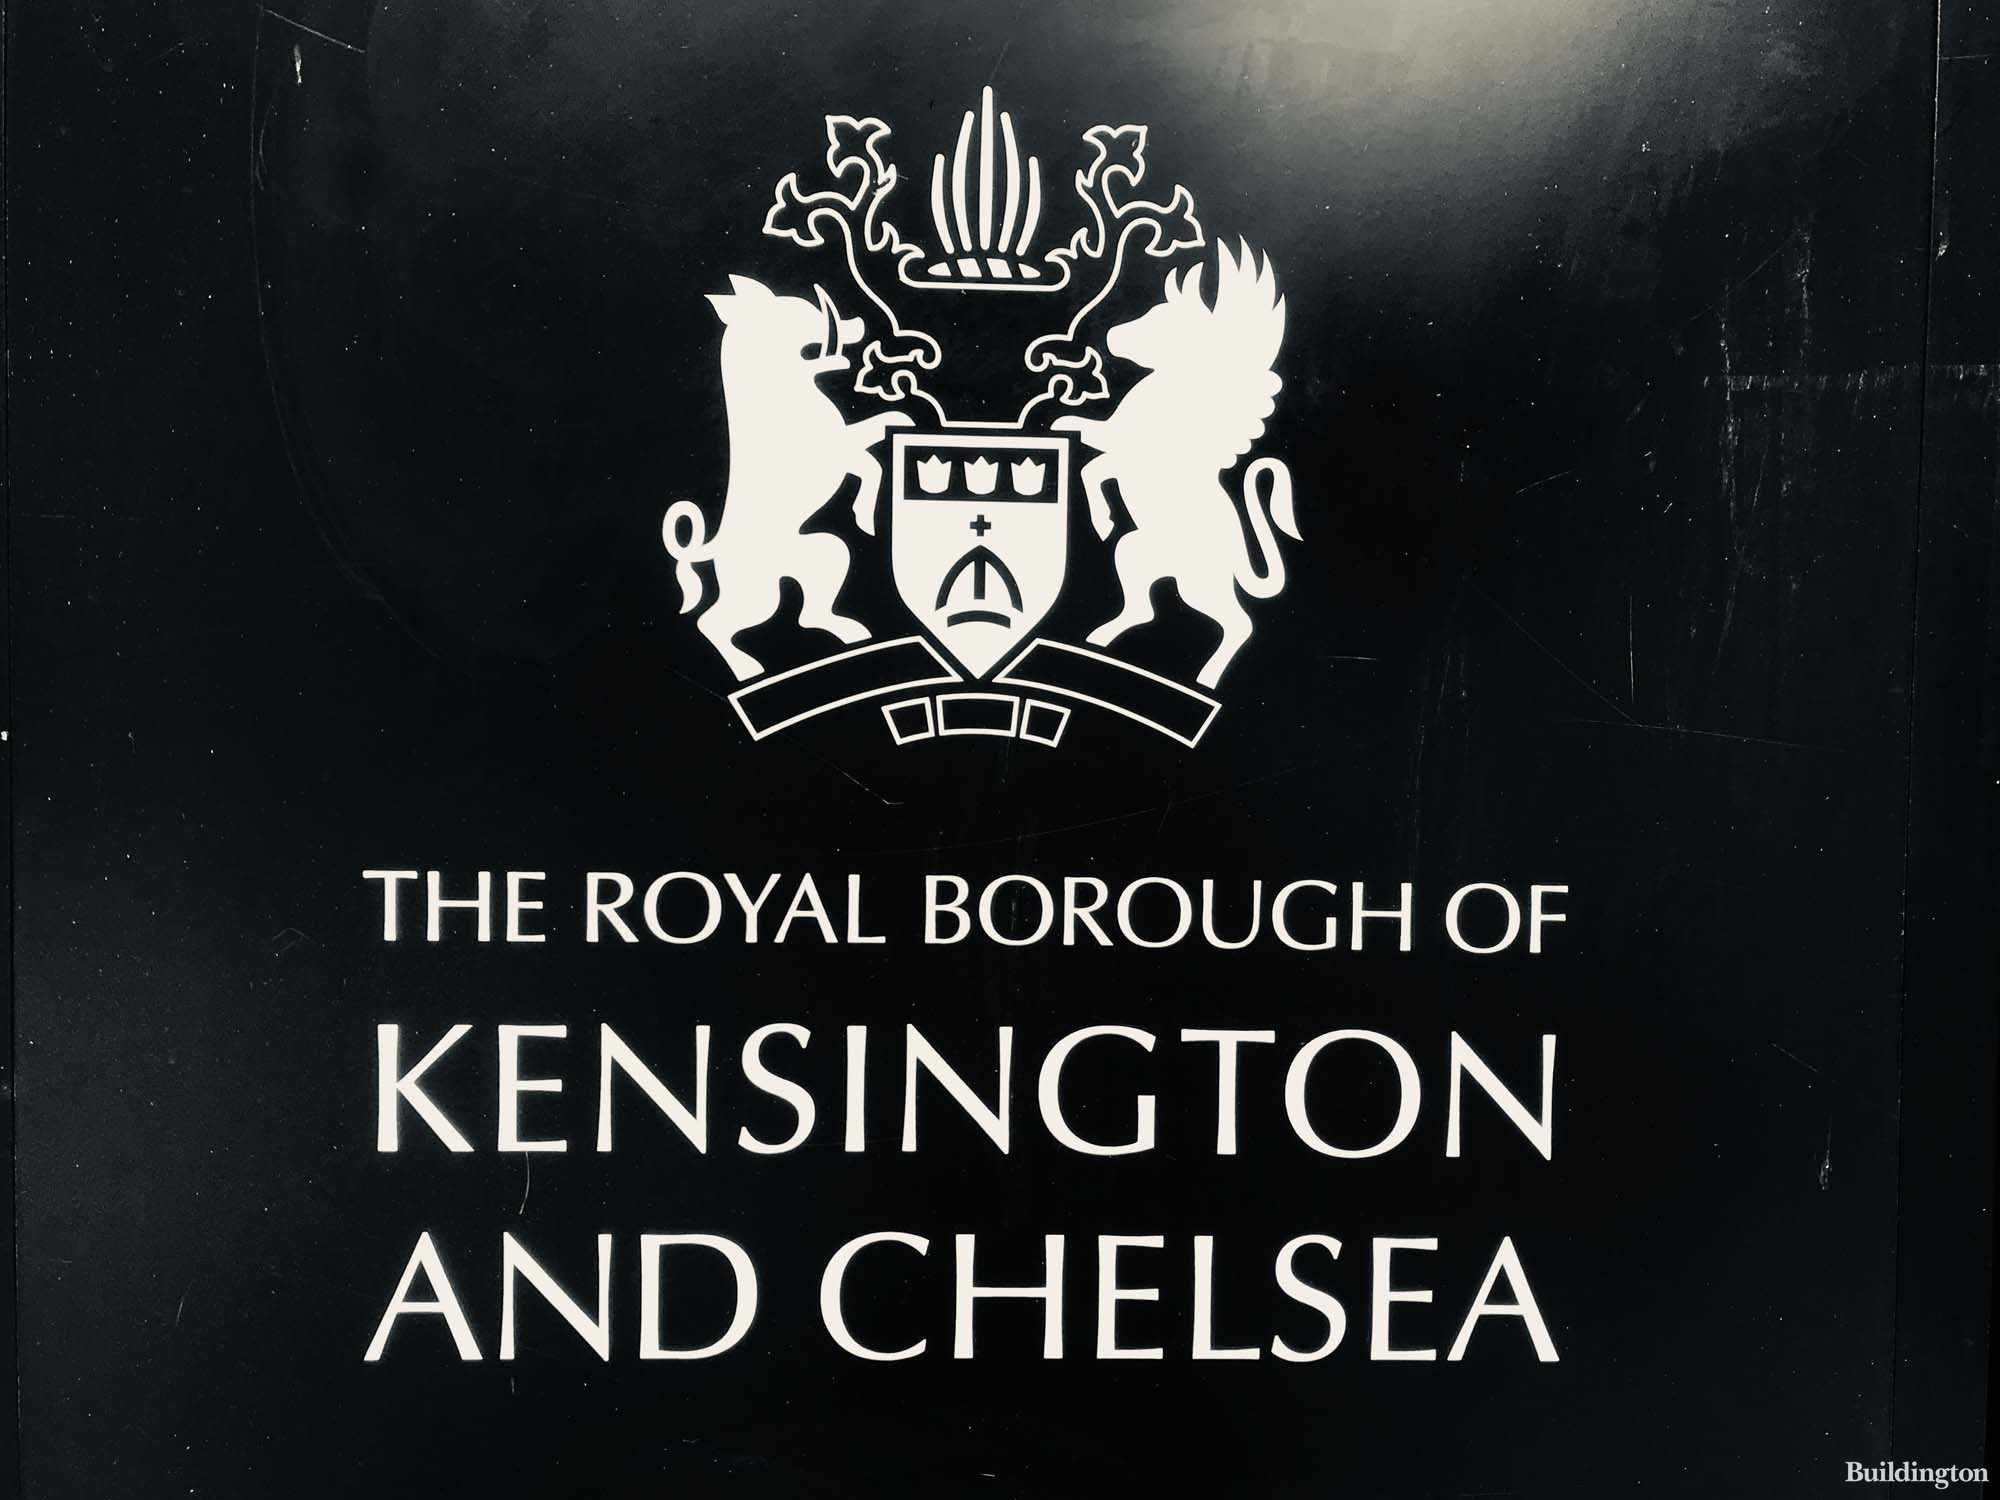 A development by the Royal Borough of Kensington and Chelsea